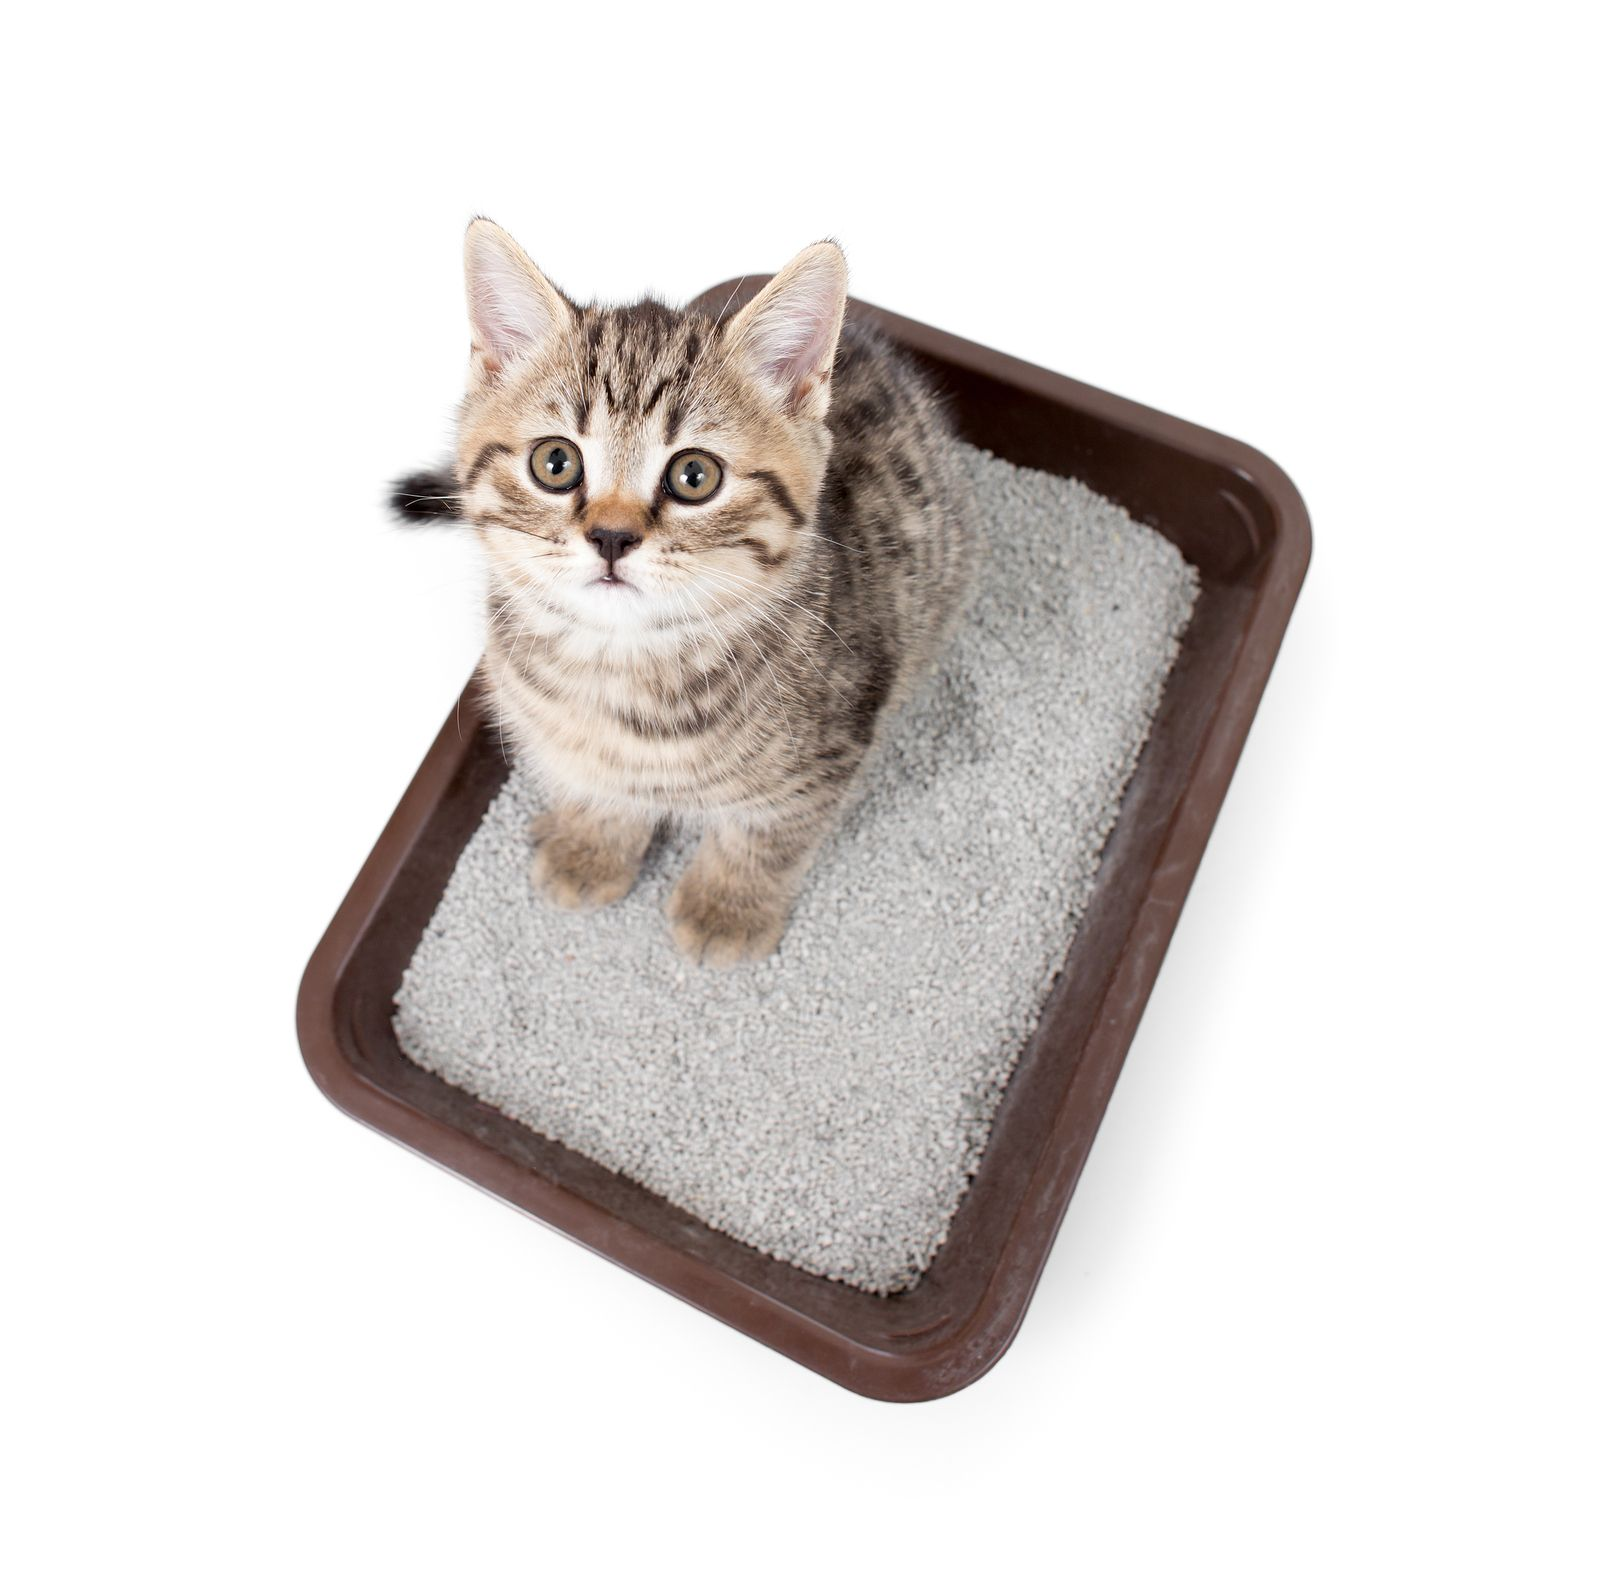 6 Tips For Litterbox Training Your Kitten Cat care